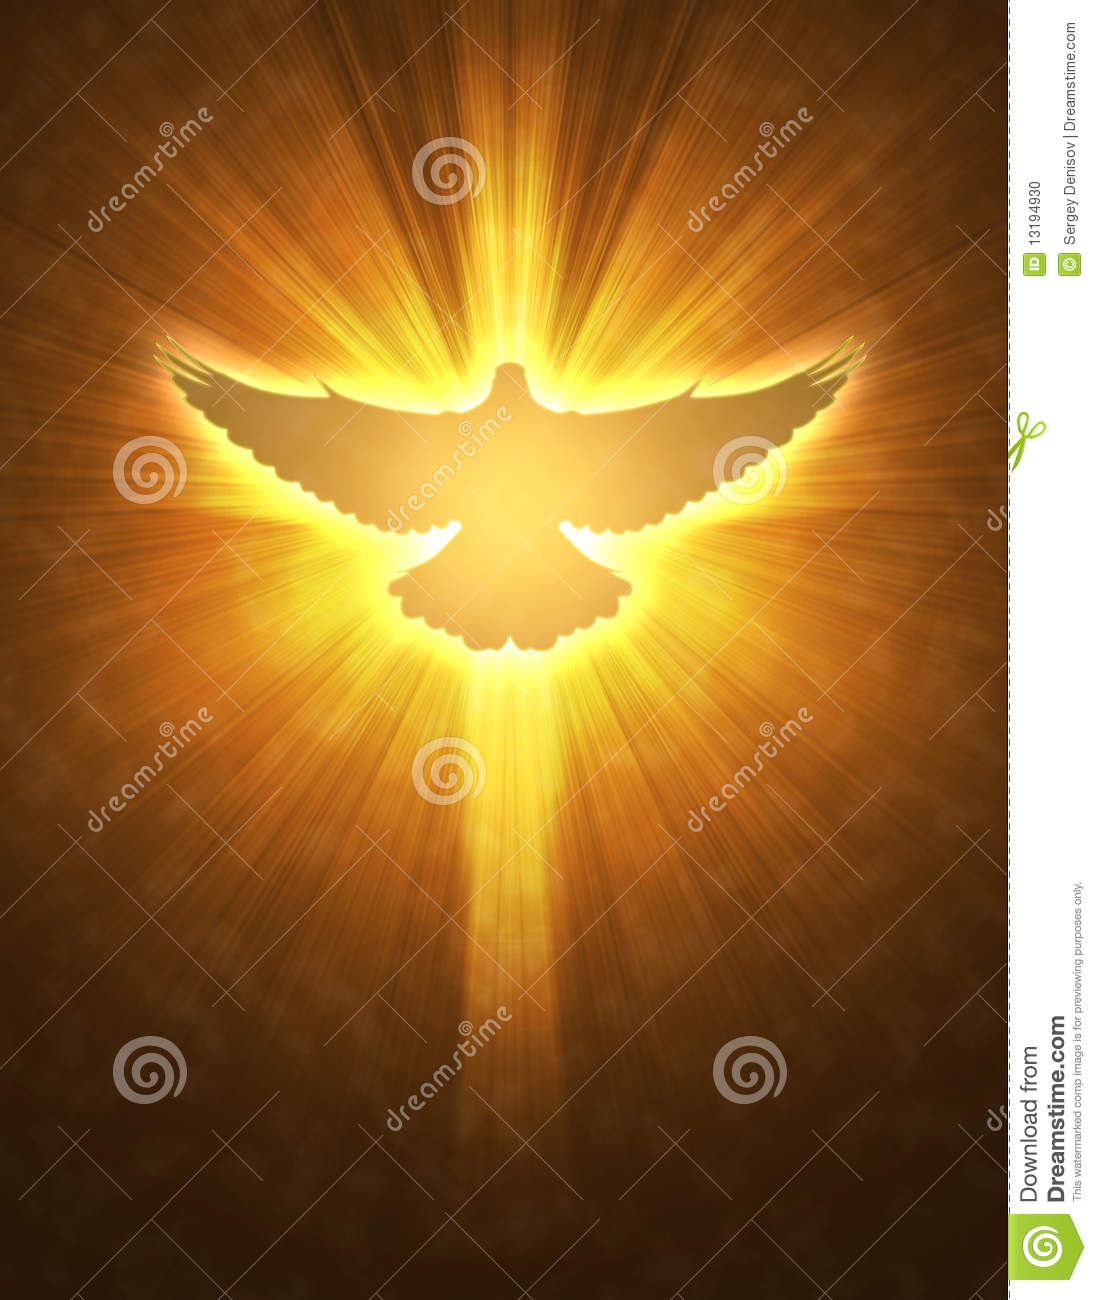 shining dove with rays on a dark stock illustration